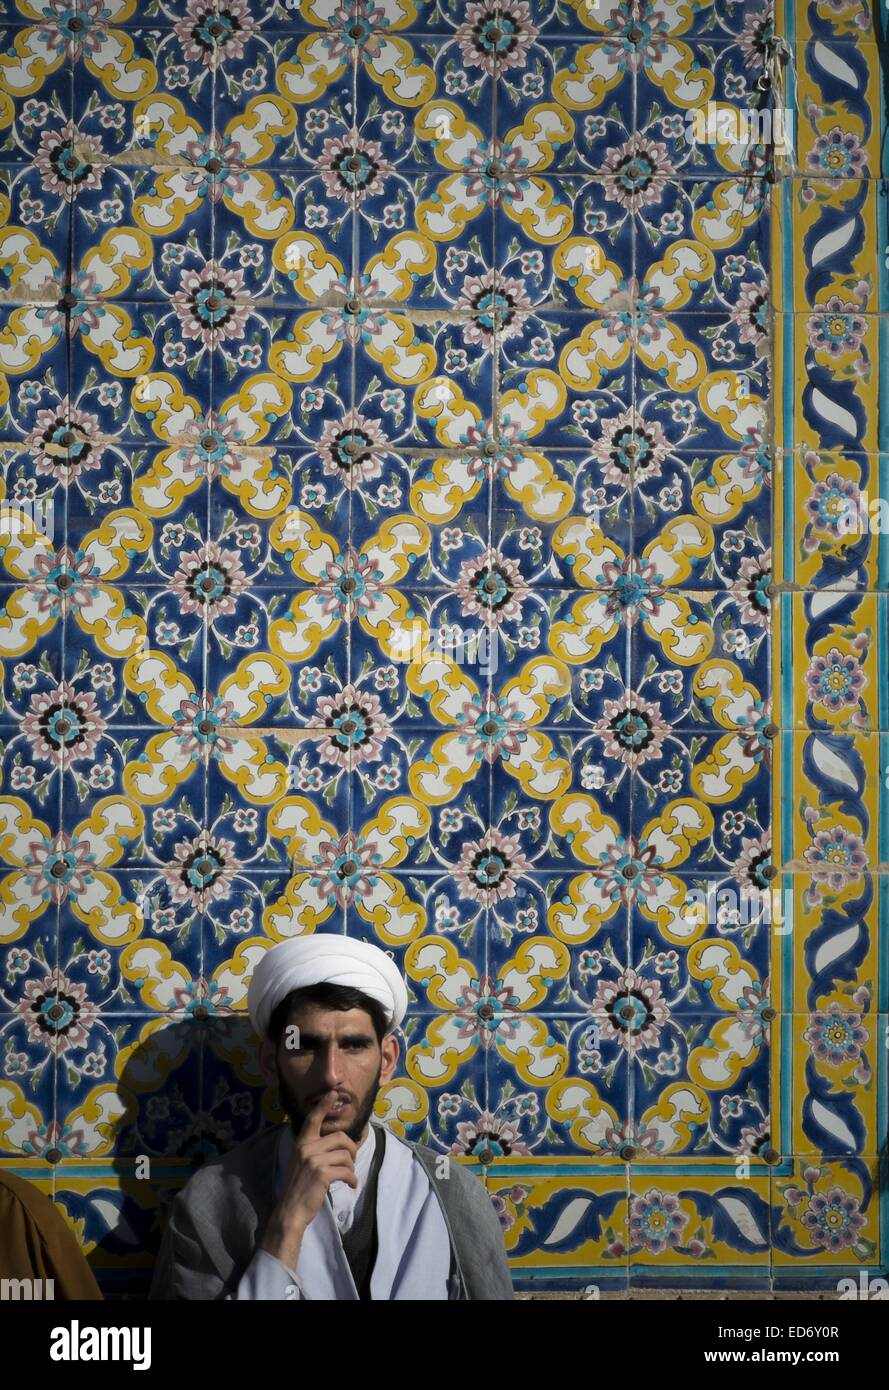 Qom, Iran. 30th Dec, 2014. December 30, 2014 - Qom, Iran - An Iranian cleric looks on while attending a rally to - Stock Image